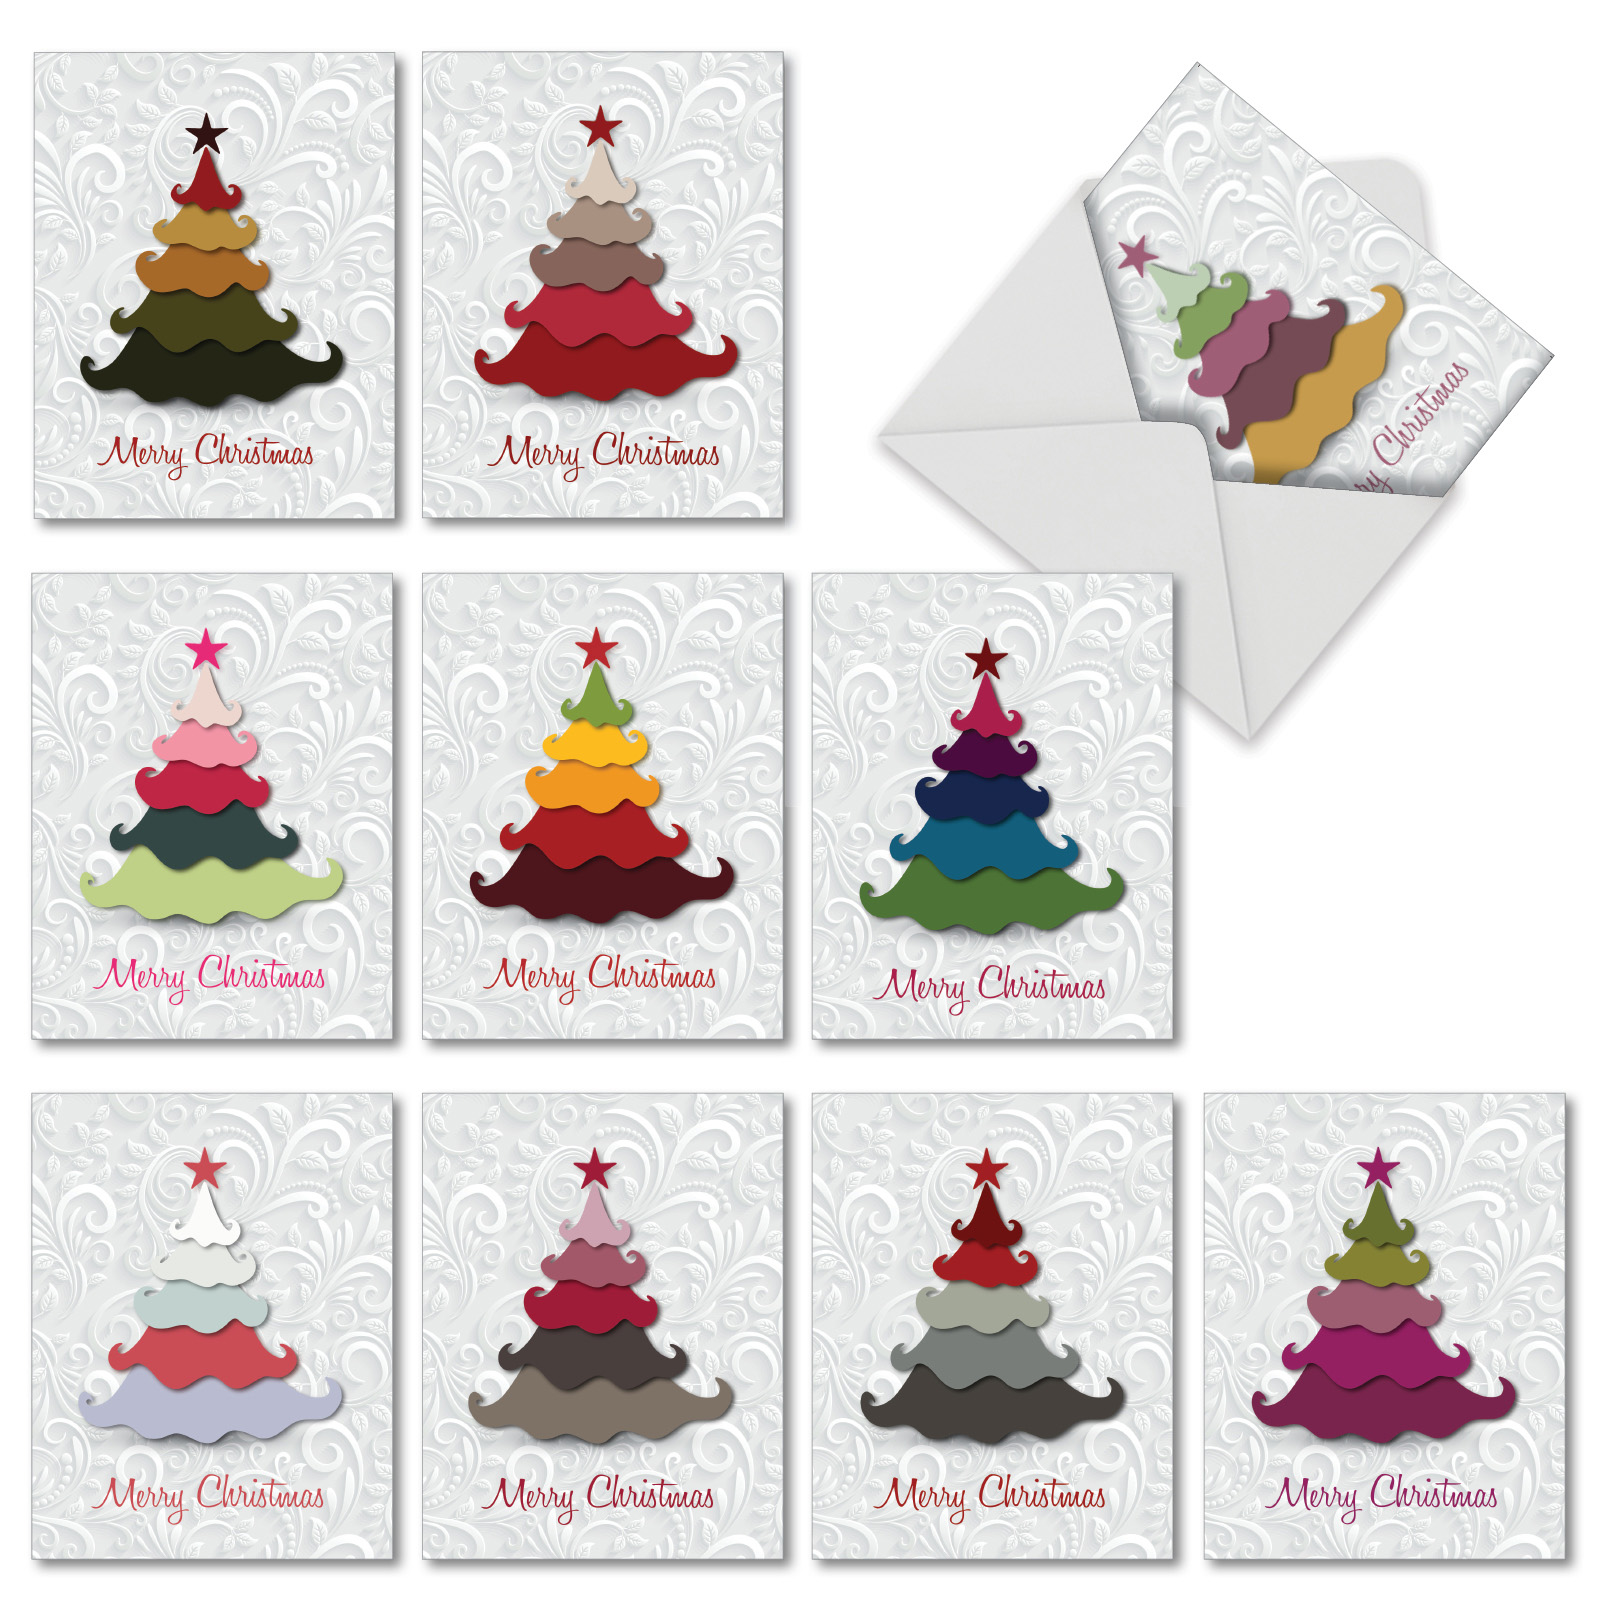 Christmas Tree Colour Schemes 2014: 'm2939xsb Holiday Hues' 10 Assorted Merry Christmas Cards